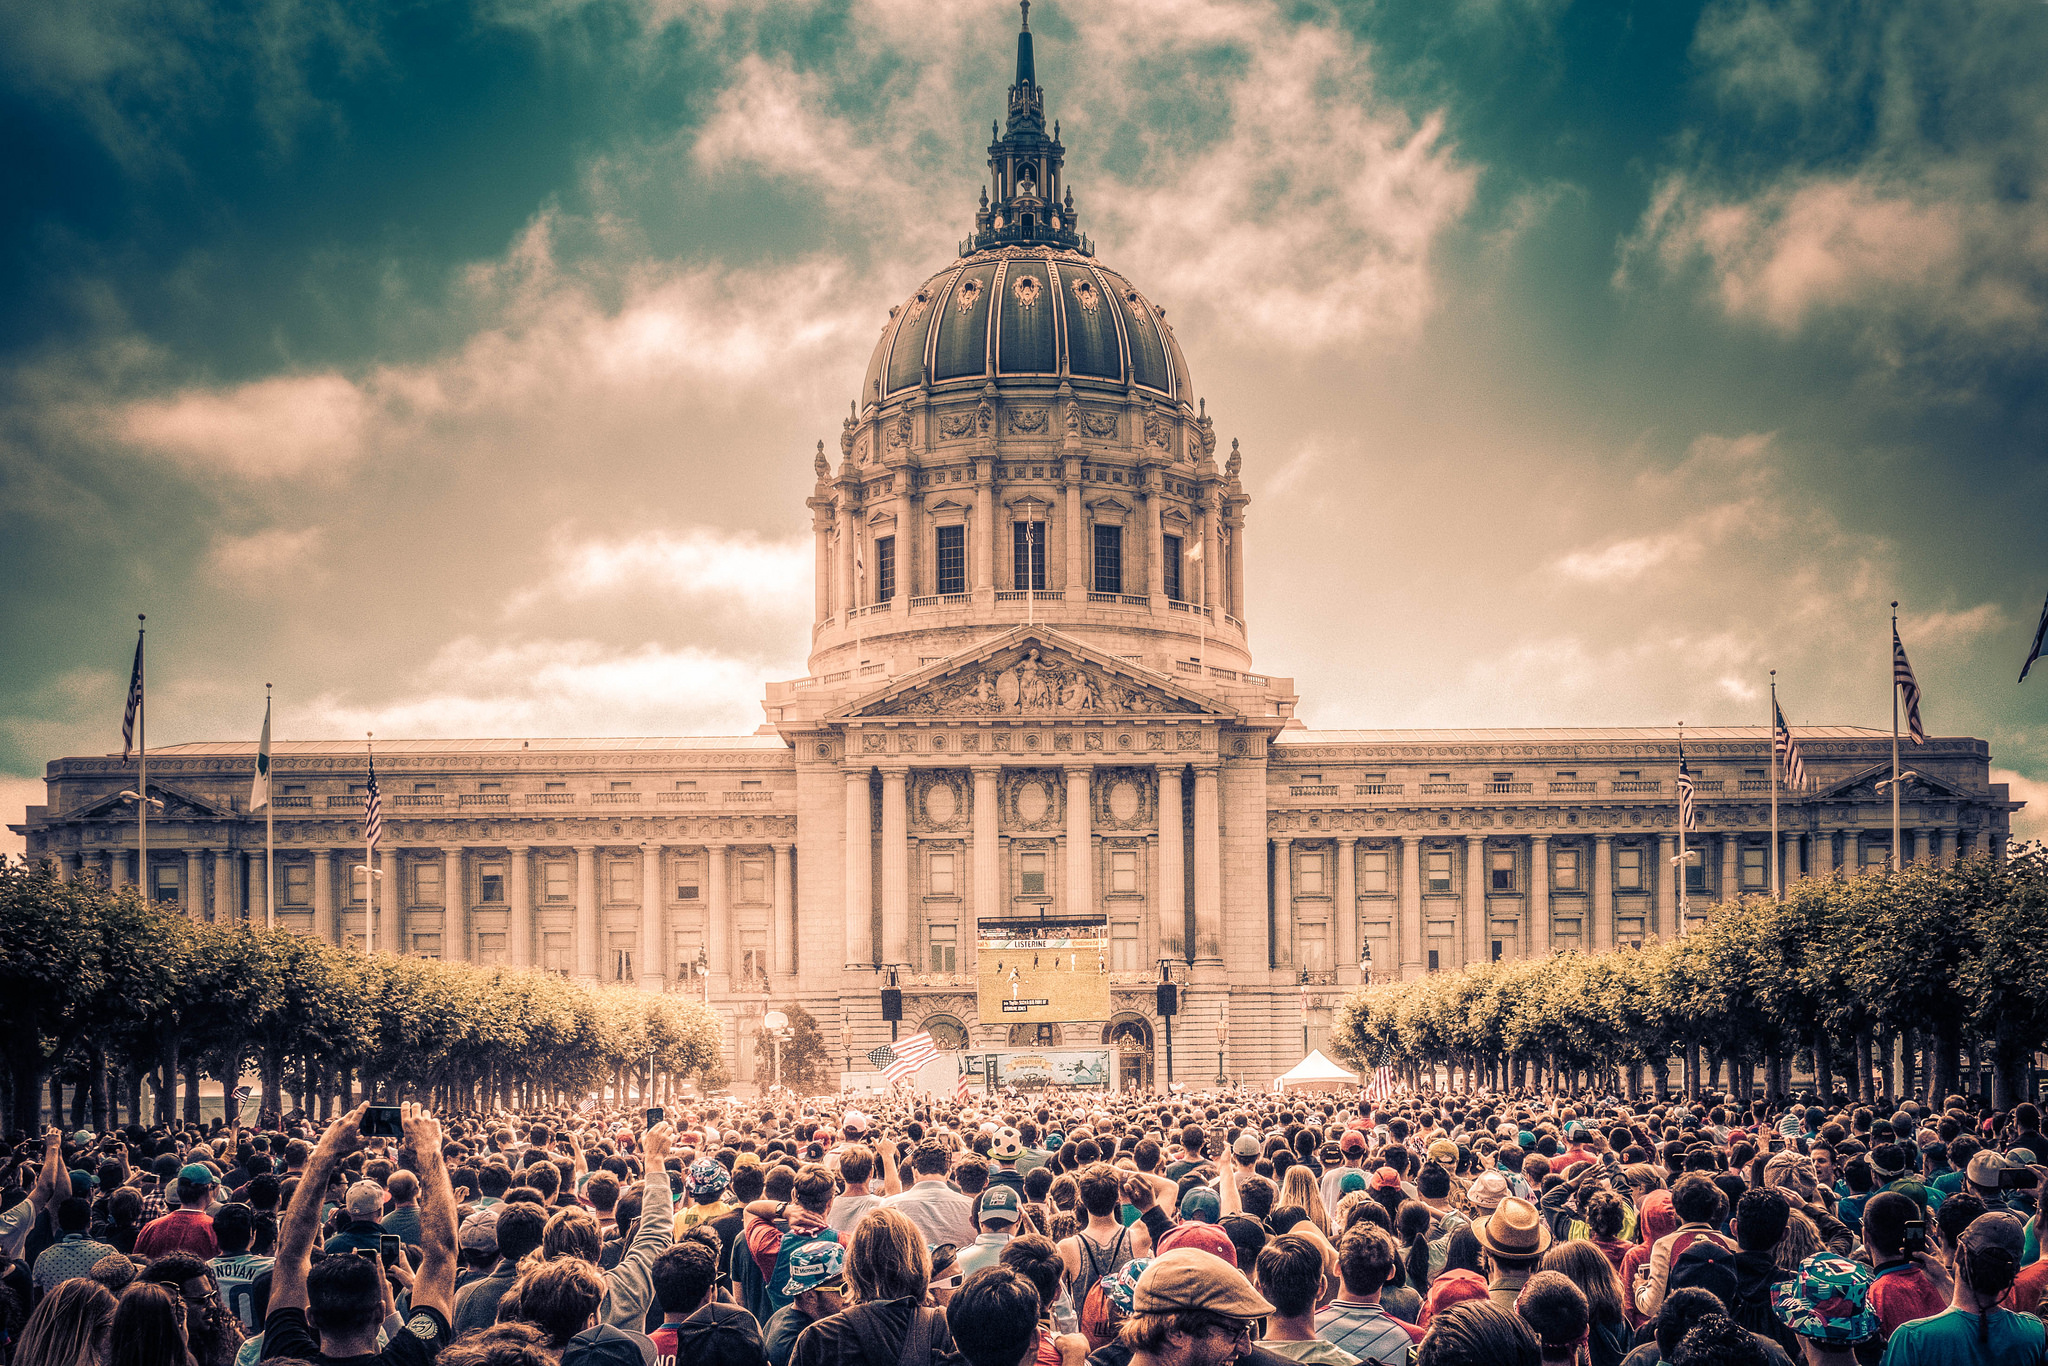 Thousands of San Franciscans gather to watch the Women's World Cup final on July 5, 2015. The San Francisco News